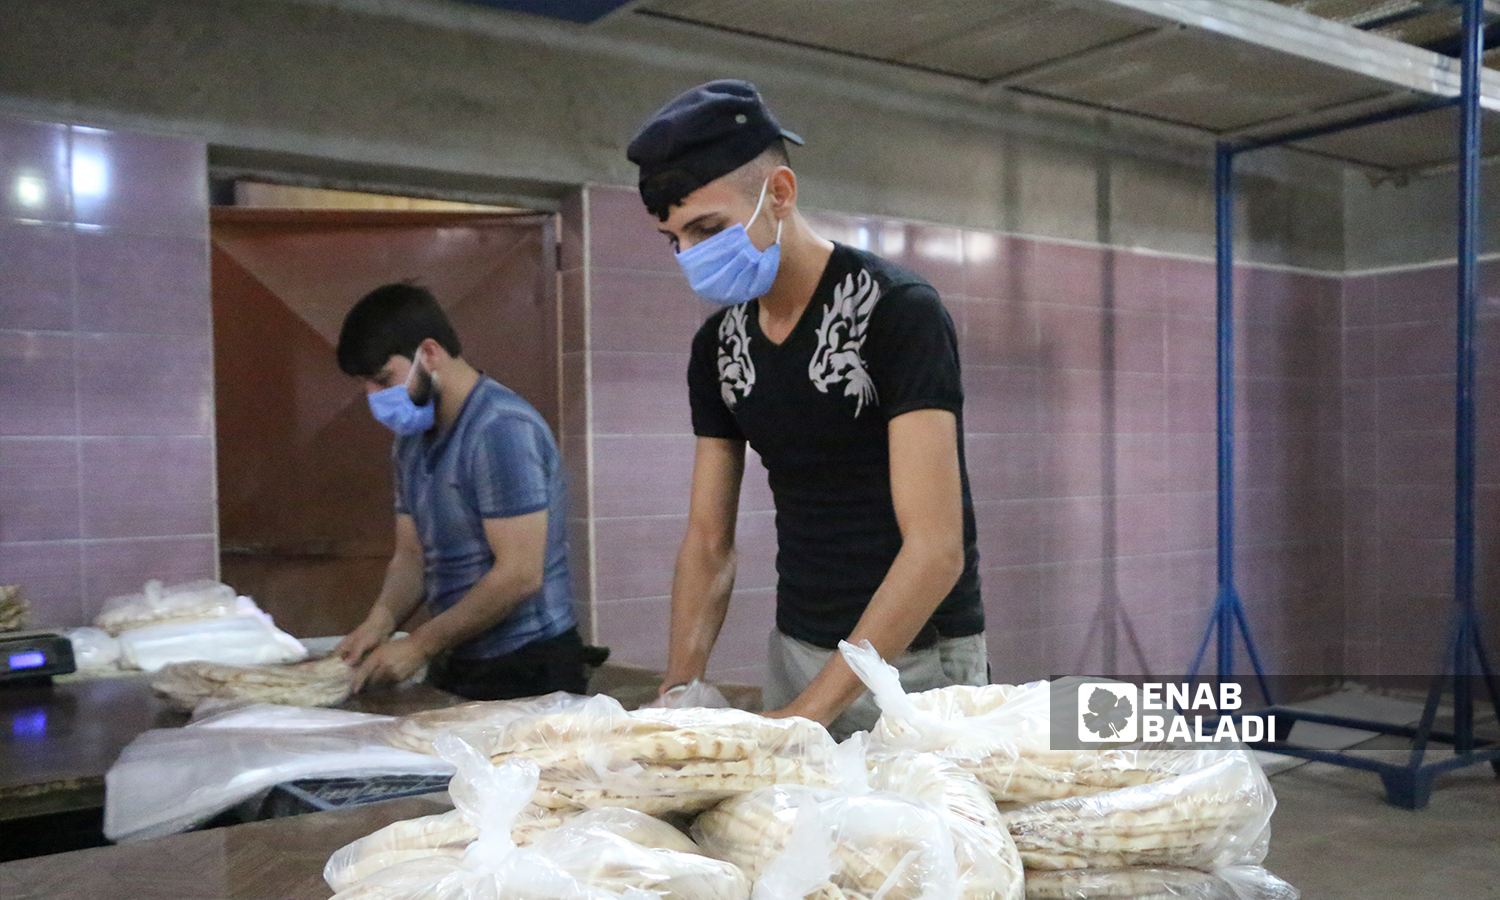 Workers packing bread in nylon bags in the al-Bab city's automated bakery - 8 October 2021 (Enab Baladi - Siraj Mohammed)